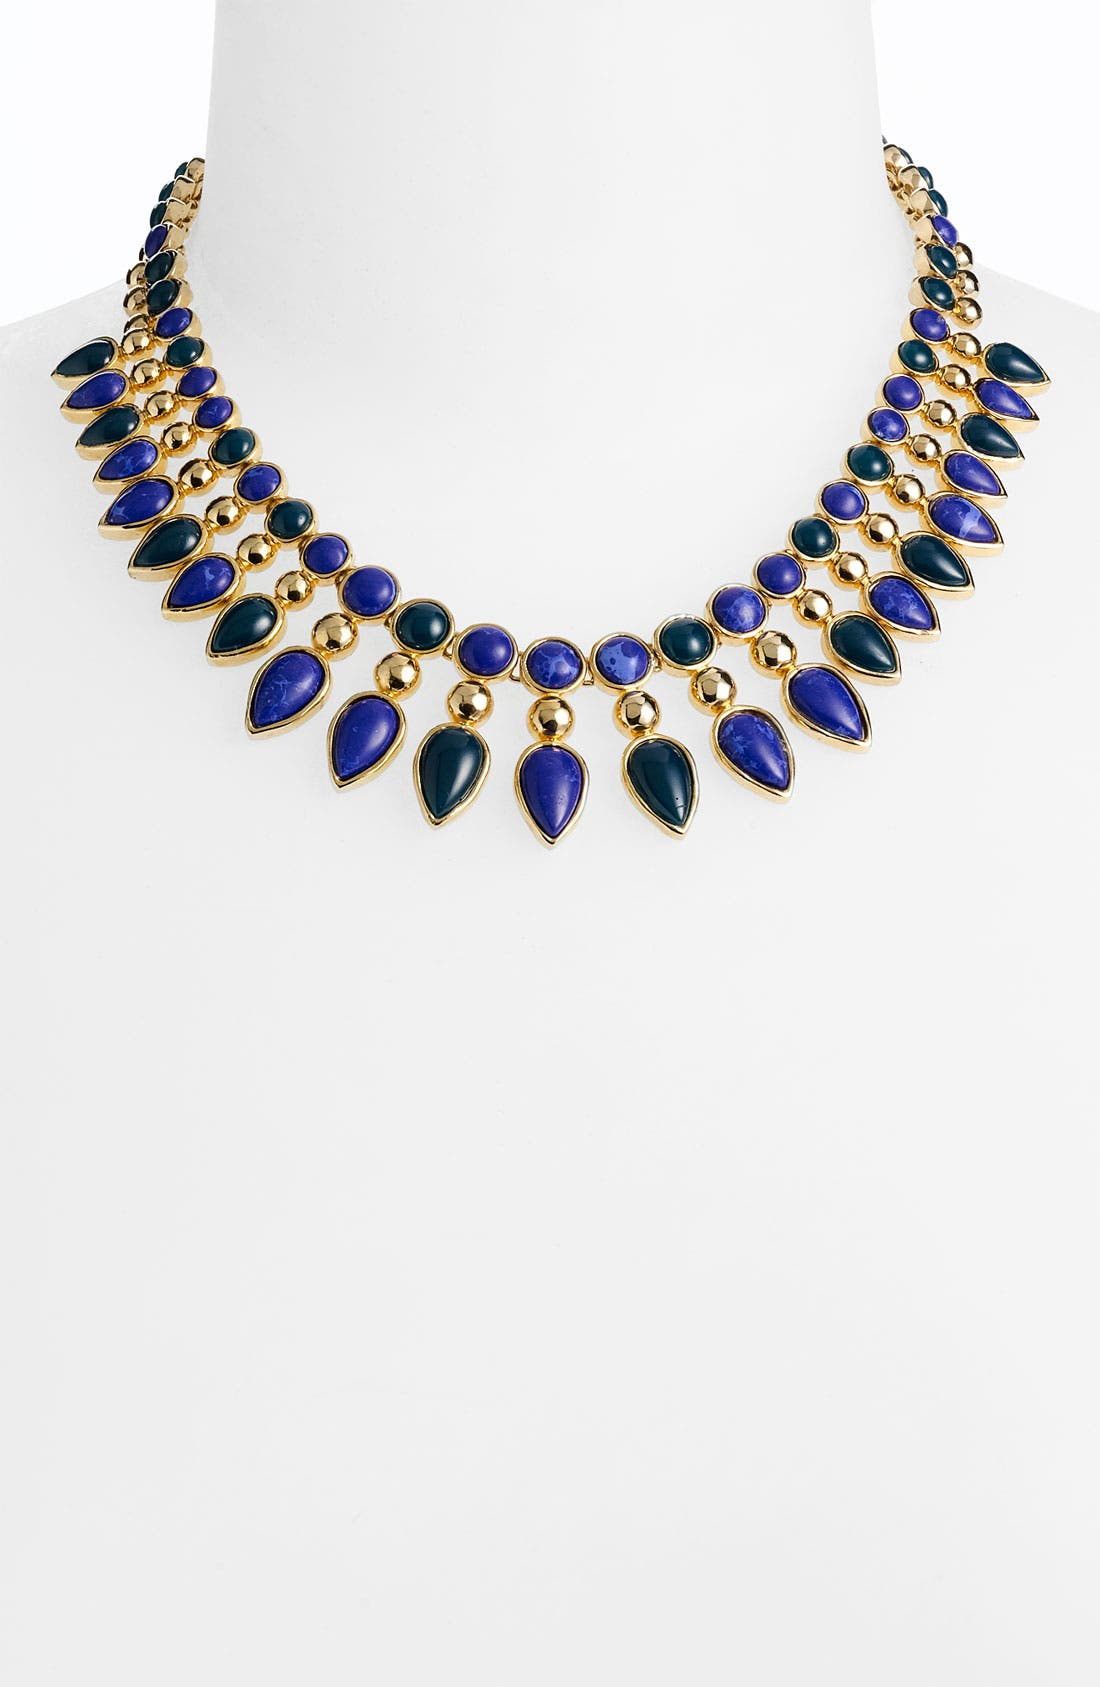 NORDSTROM, 'Lapis of Luxury - Cleopatra' Necklace, Main thumbnail 1, color, 400